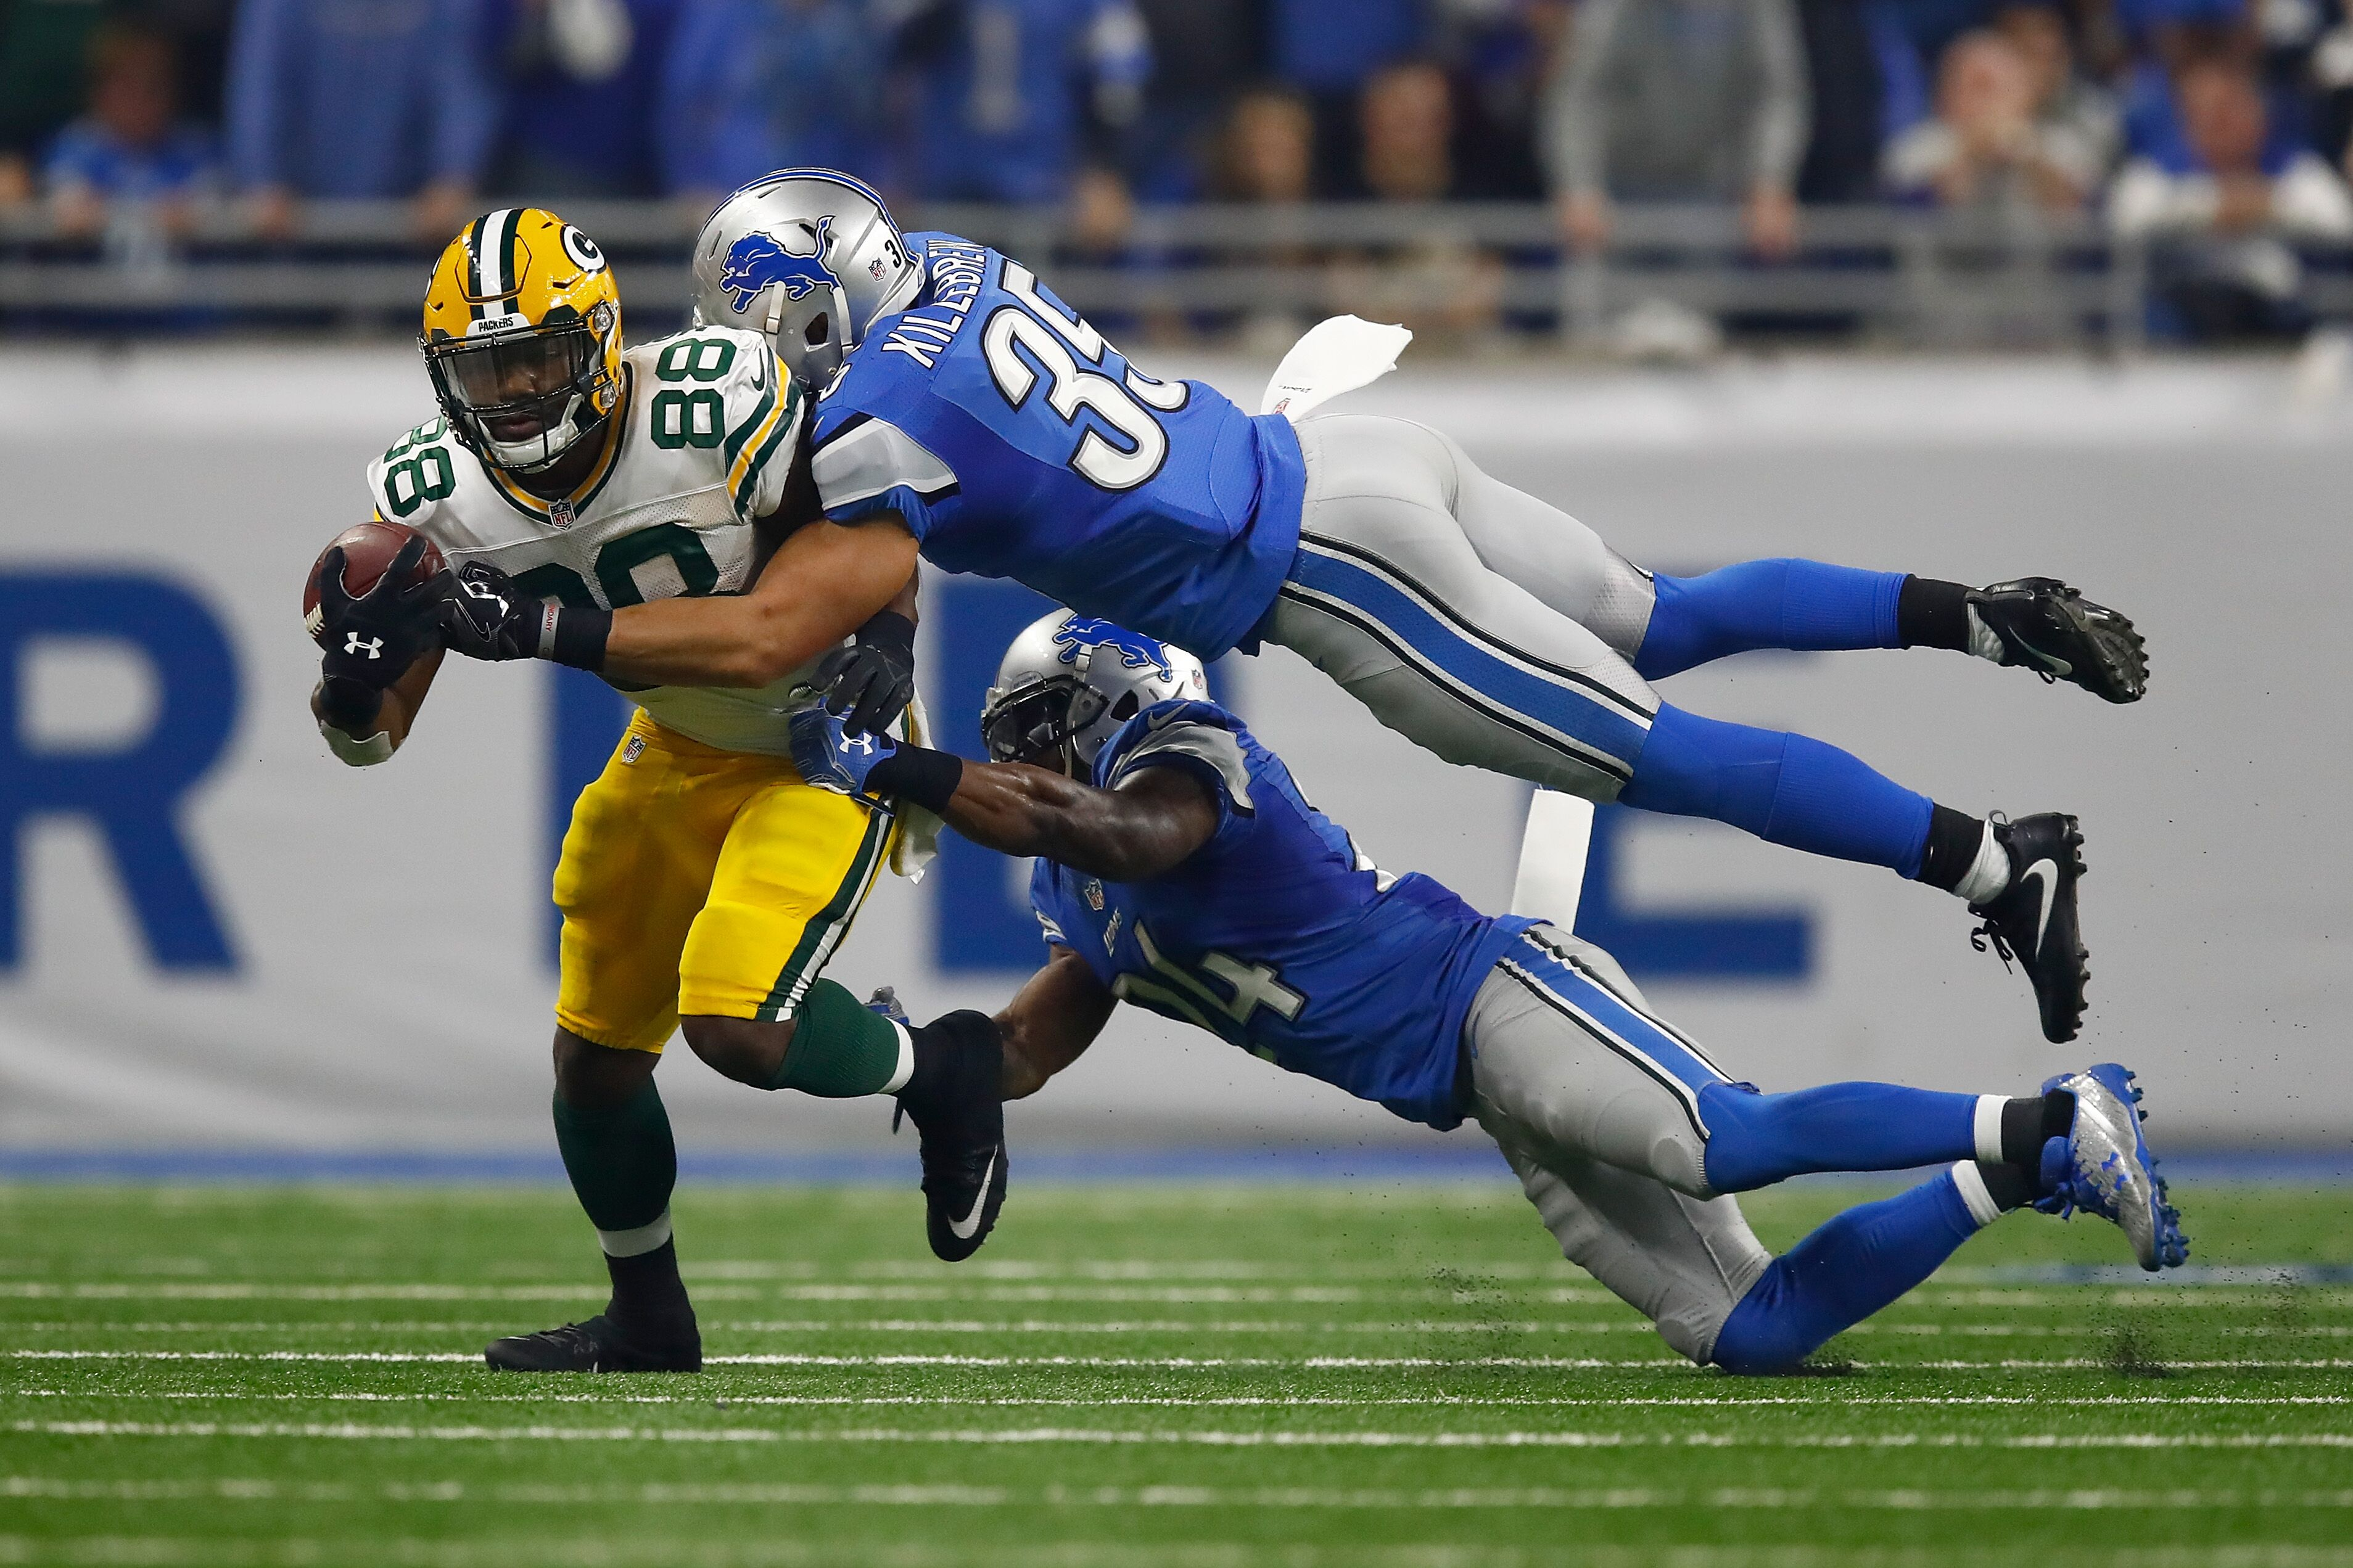 lions vs packers - photo #21